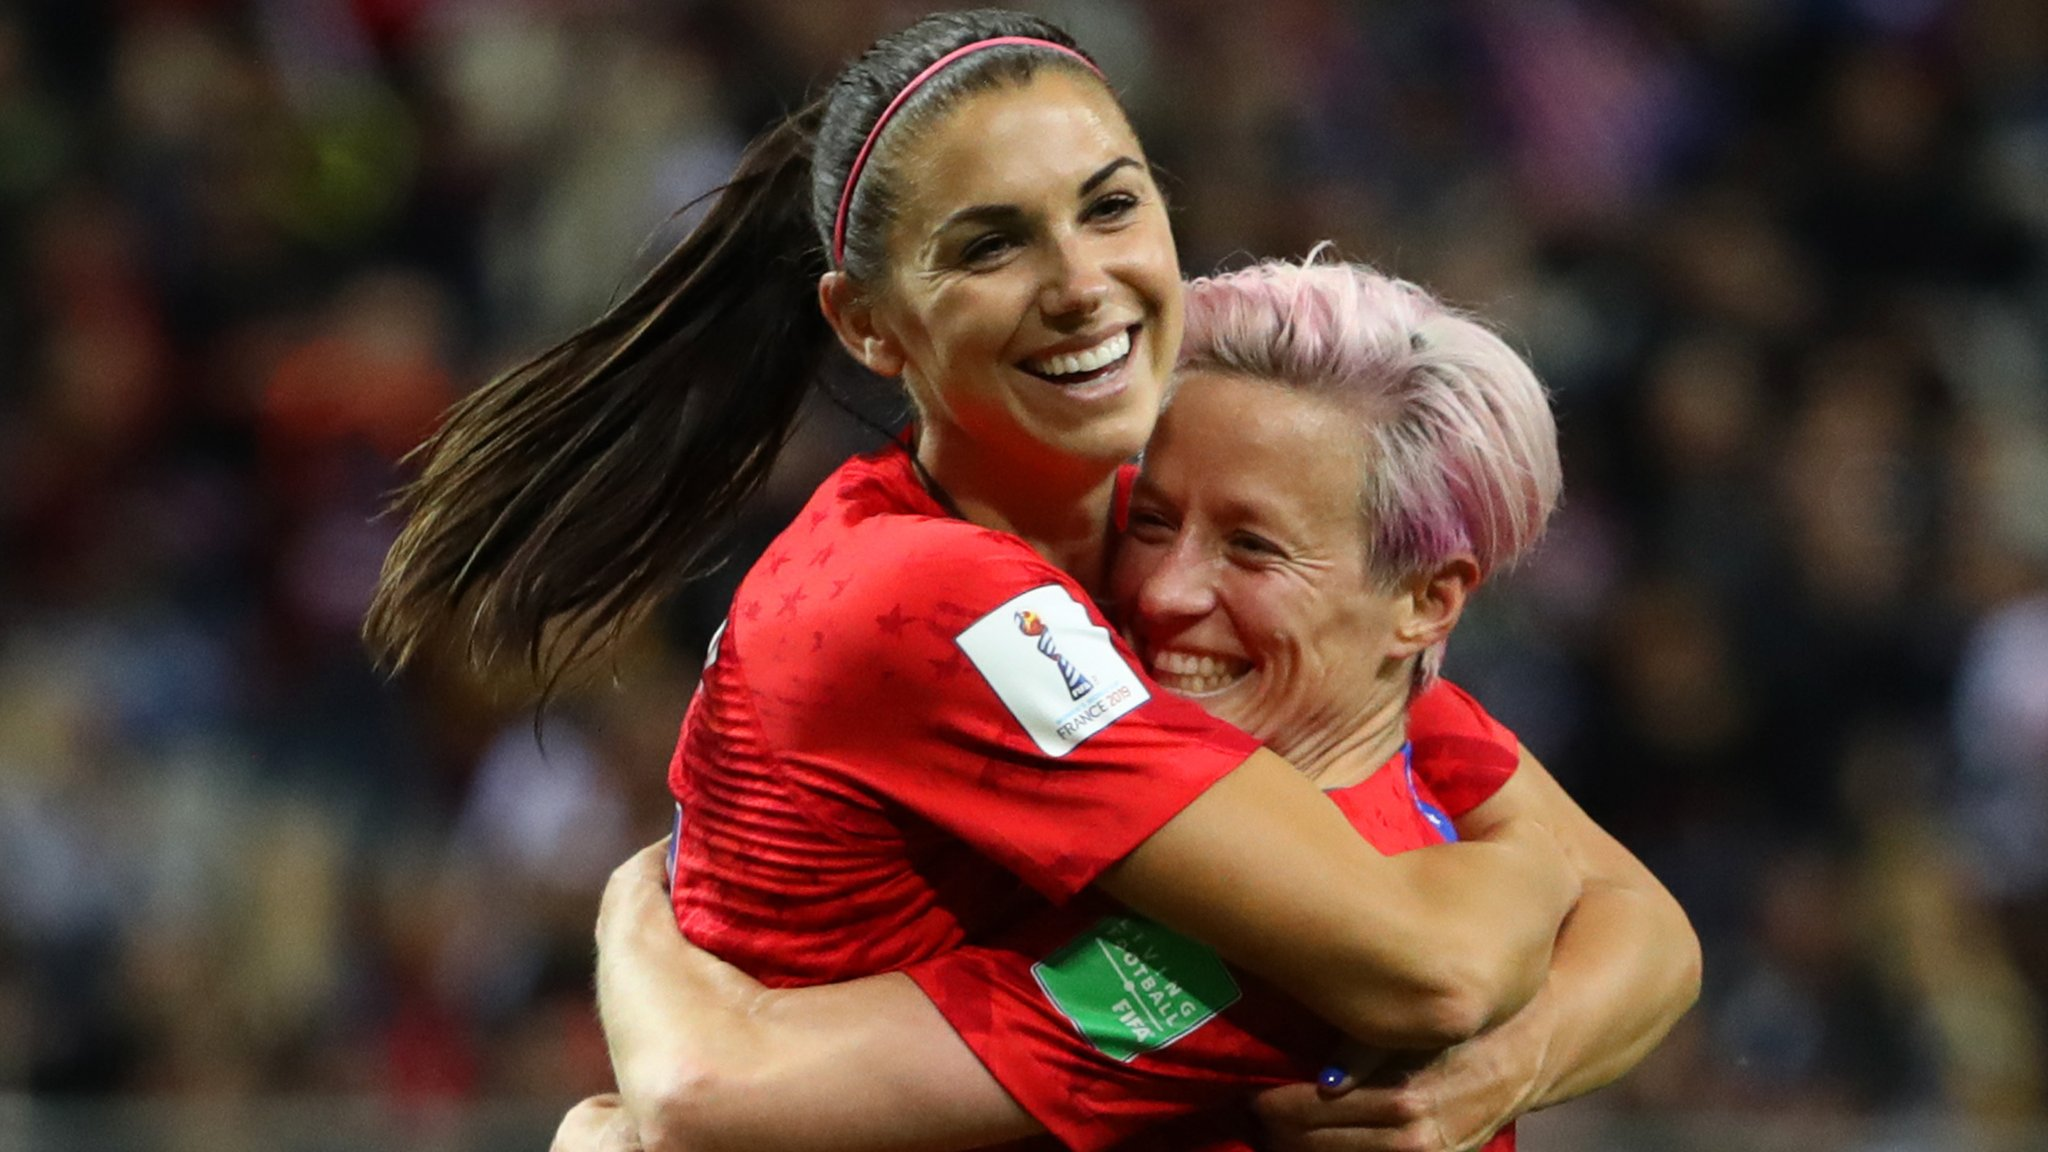 Women's World Cup 2019: What to look out for on day 10